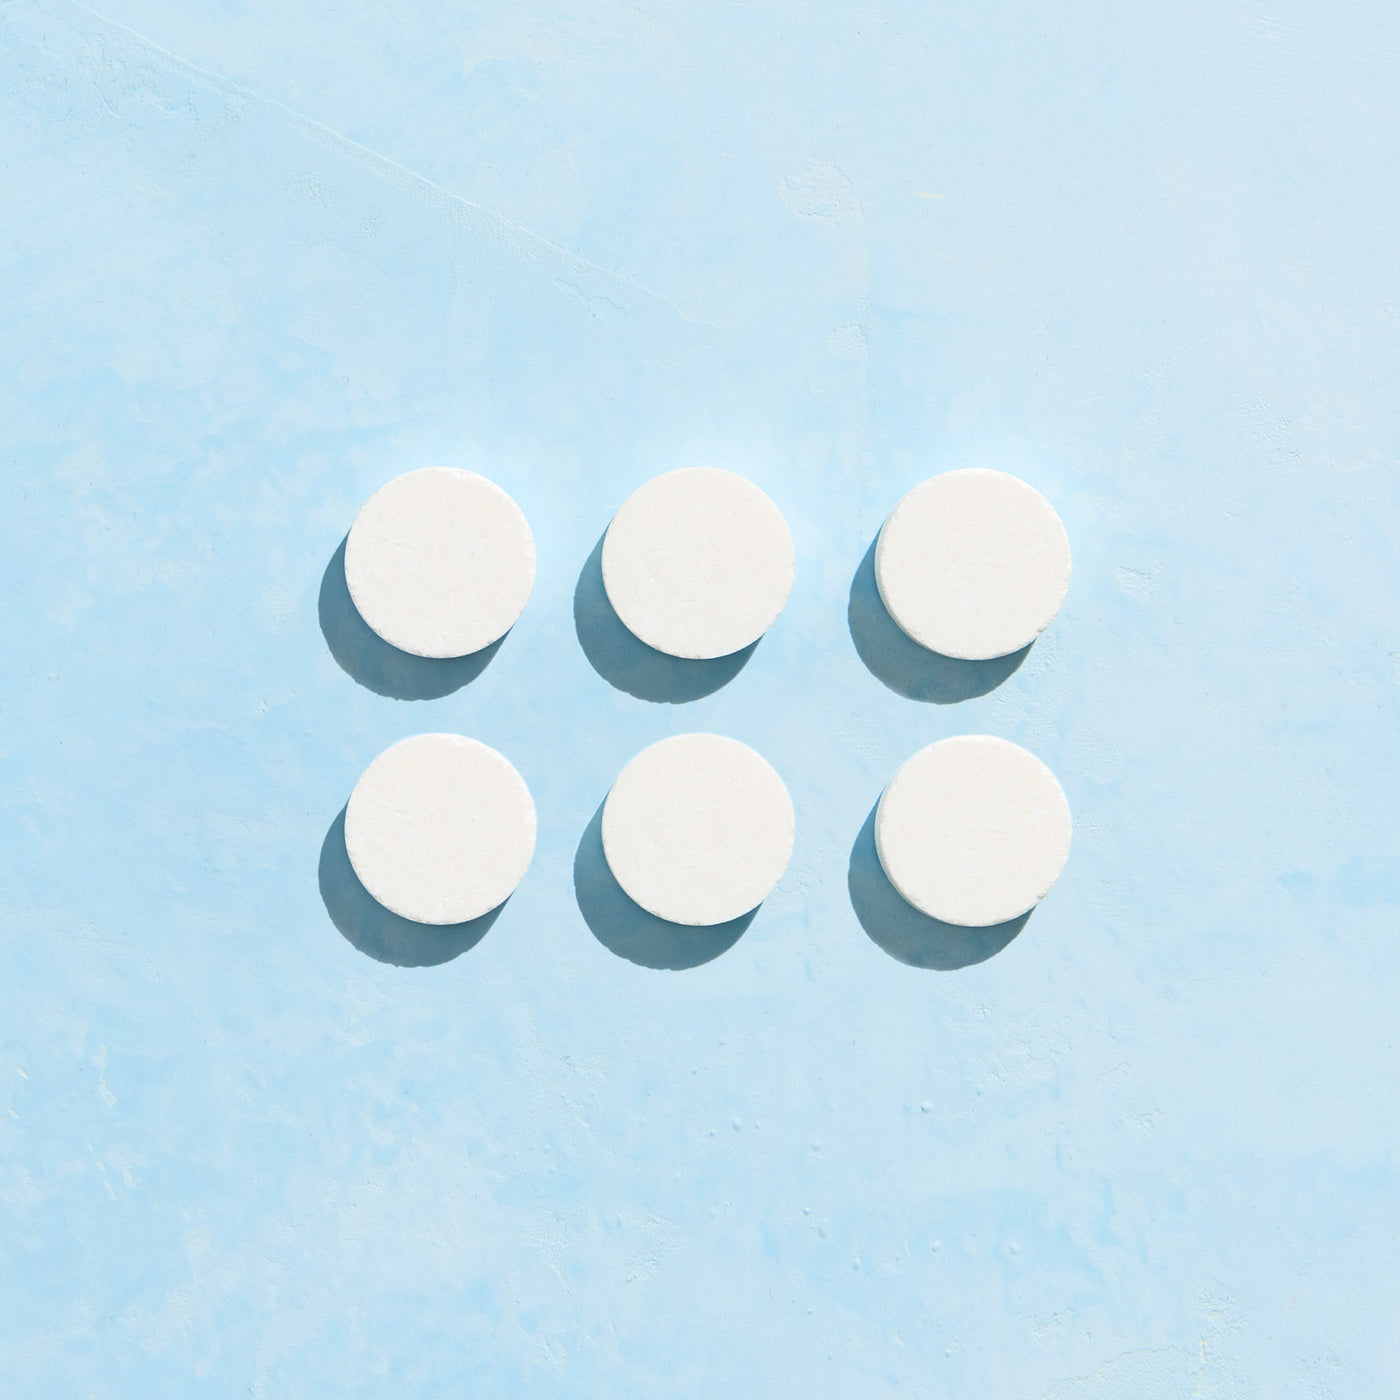 Six unwrapped Foaming Hand Soap tablets on blue background